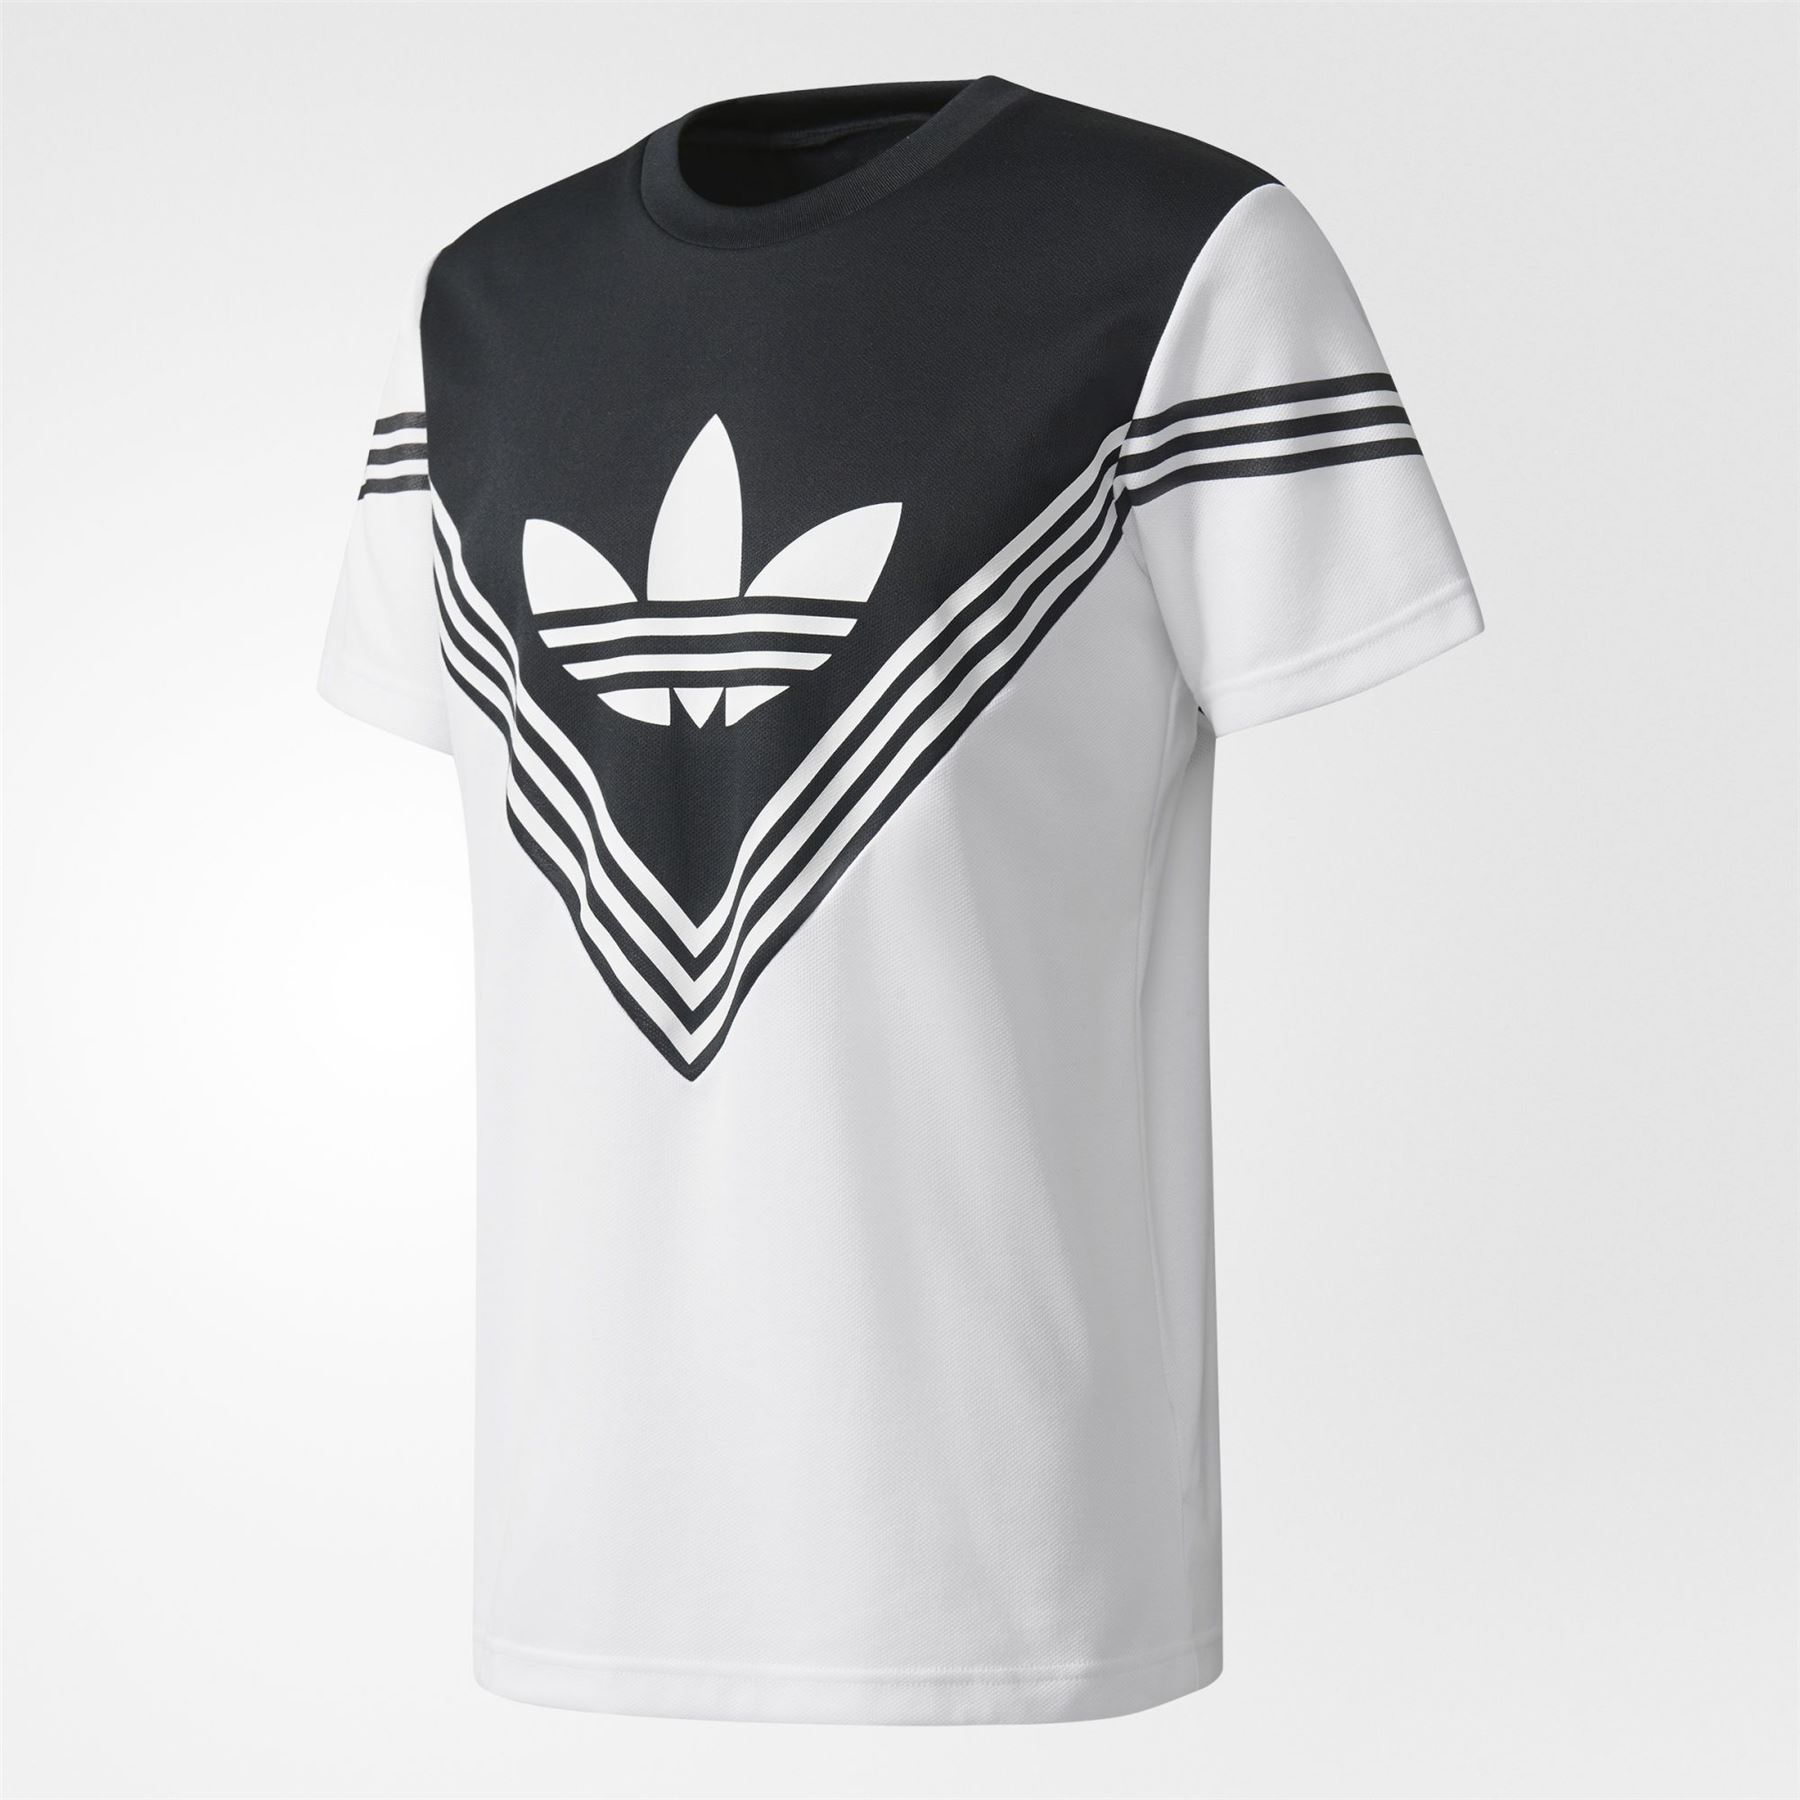 72ce497f2b99 Details about adidas ORIGINALS X WHITE MOUNTAINEERING FOOTBALL JERSEY WHITE  BLACK RETRO MEN S